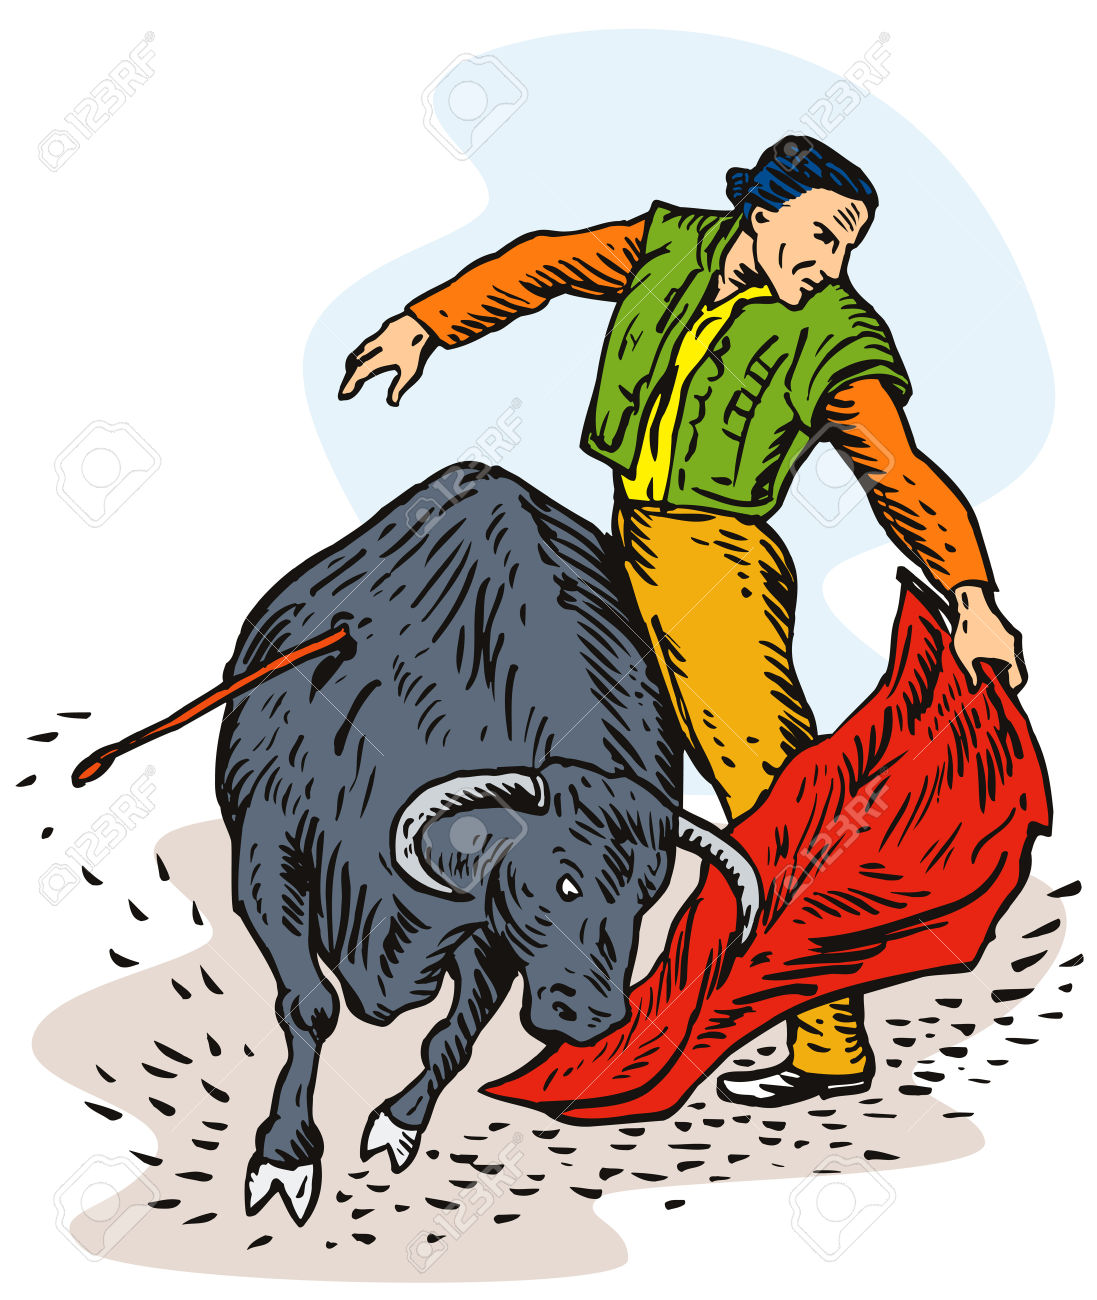 Bull Fighting Royalty Free Cliparts, Vectors, And Stock.